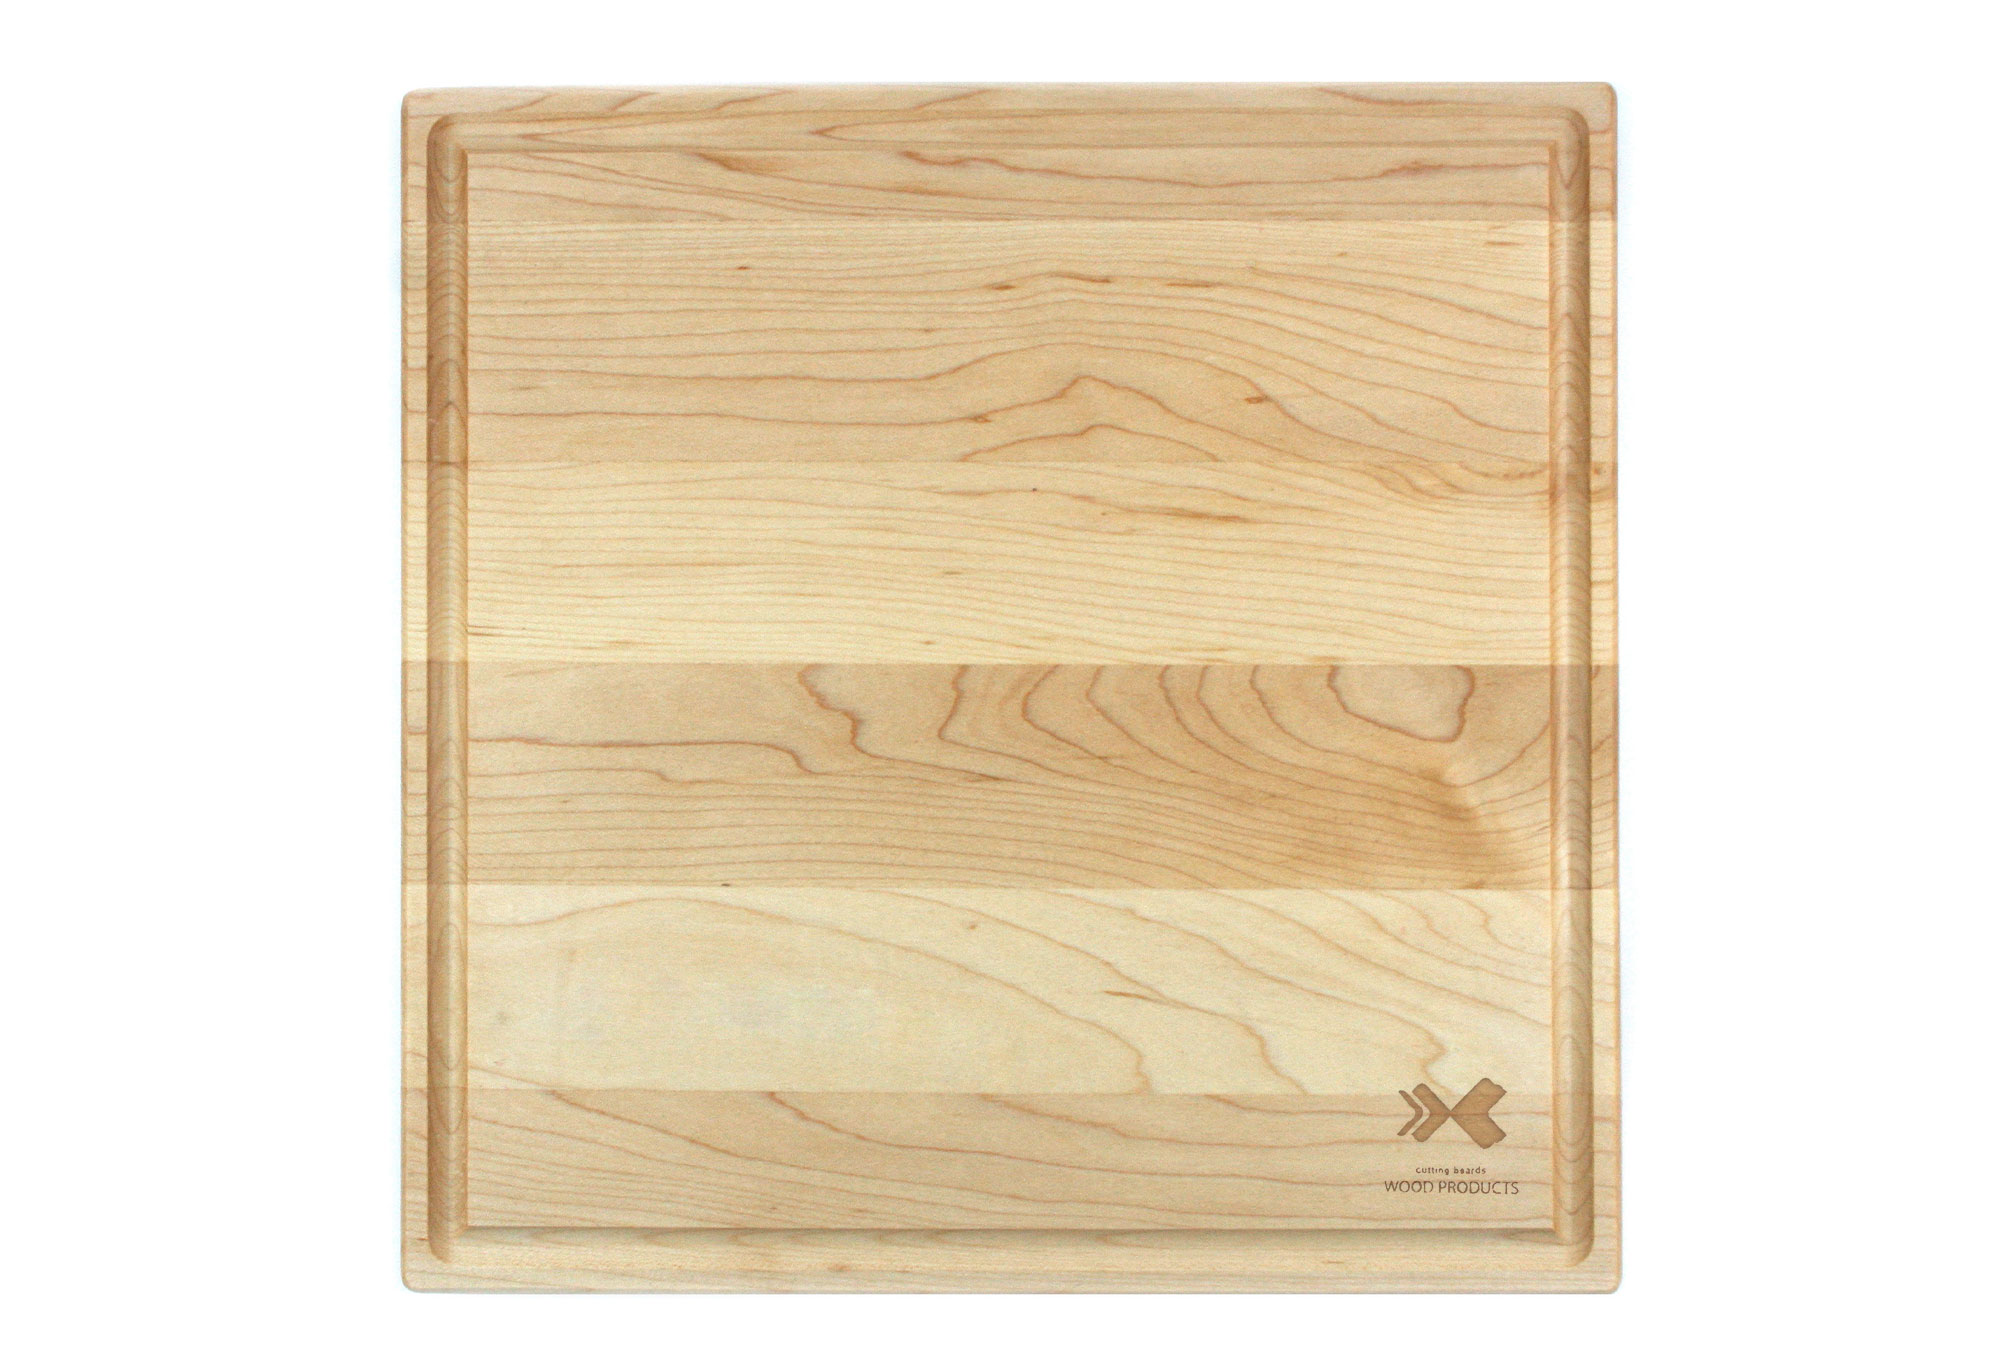 Square maple cutting board with rounded corners & juice groove Engraved